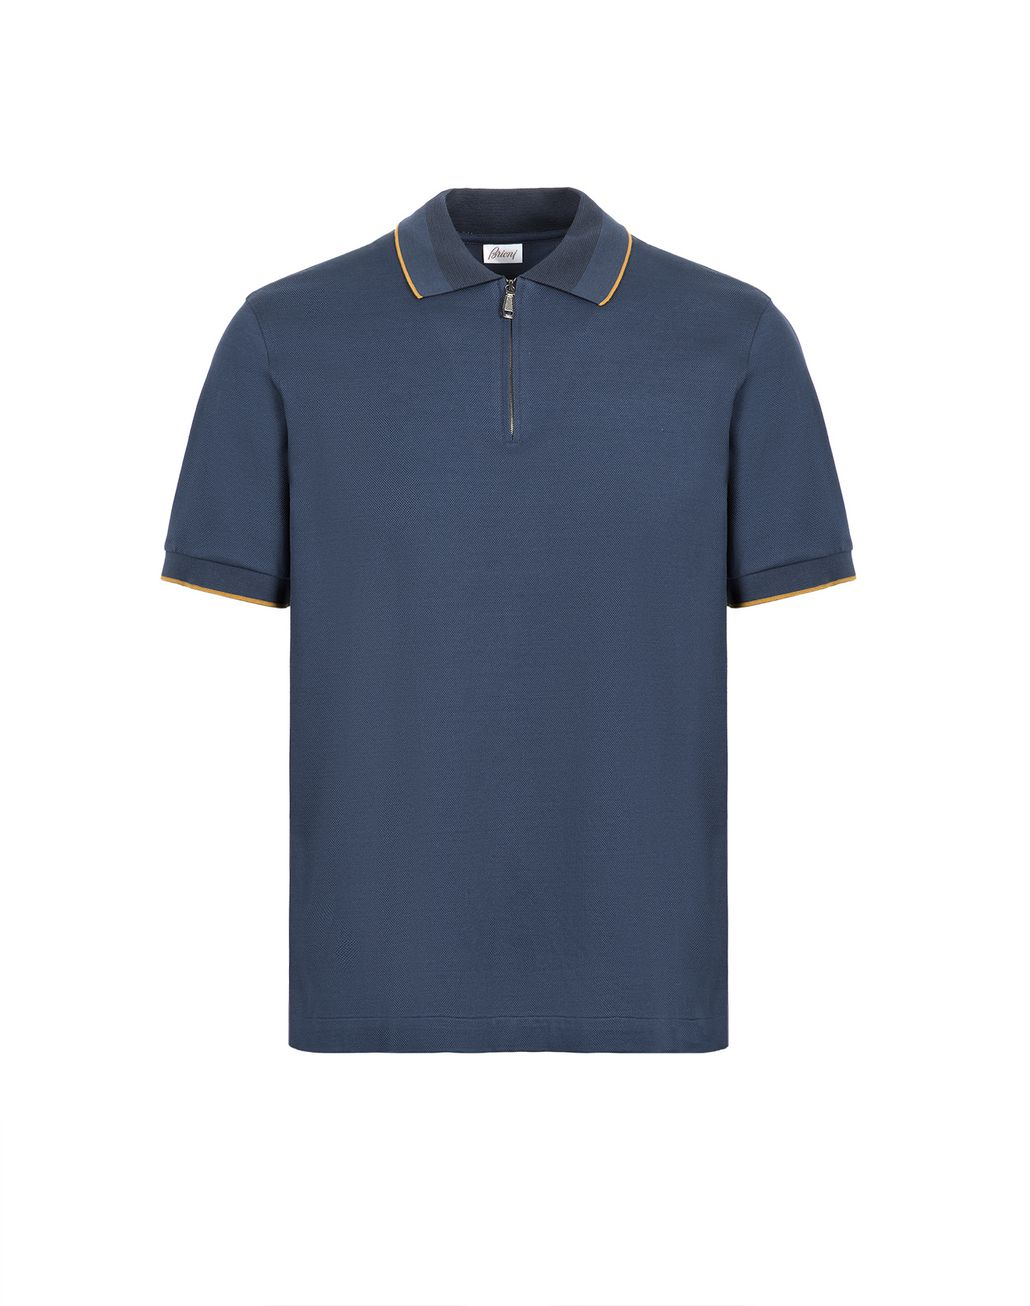 BRIONI Navy Blue Zipped Polo Shirt with Mustard Details T-Shirts & Polos Man f